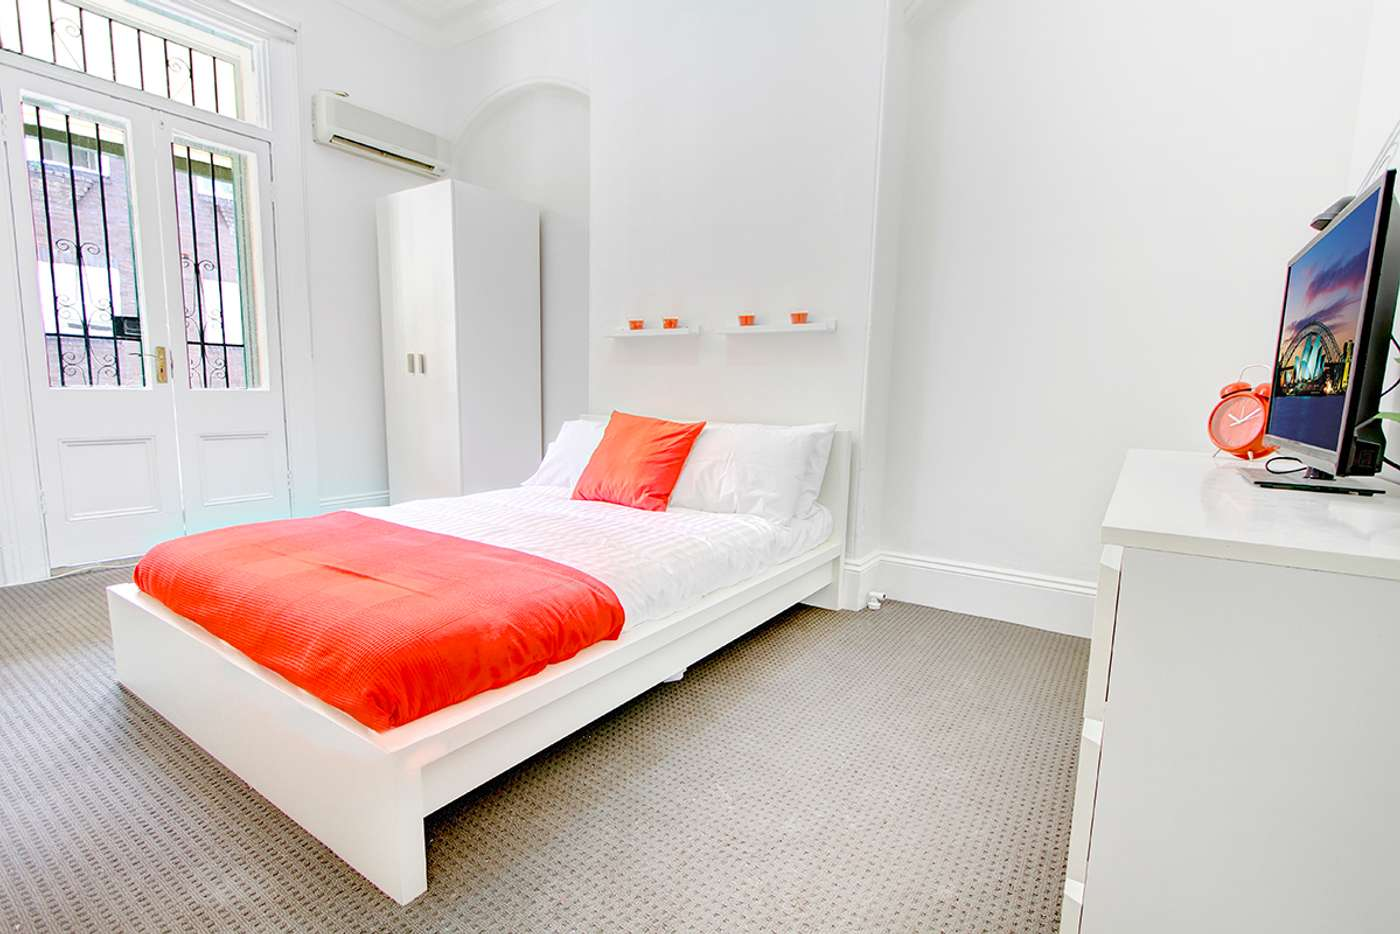 Main view of Homely studio listing, 8/25 Roslyn Street, Potts Point NSW 2011